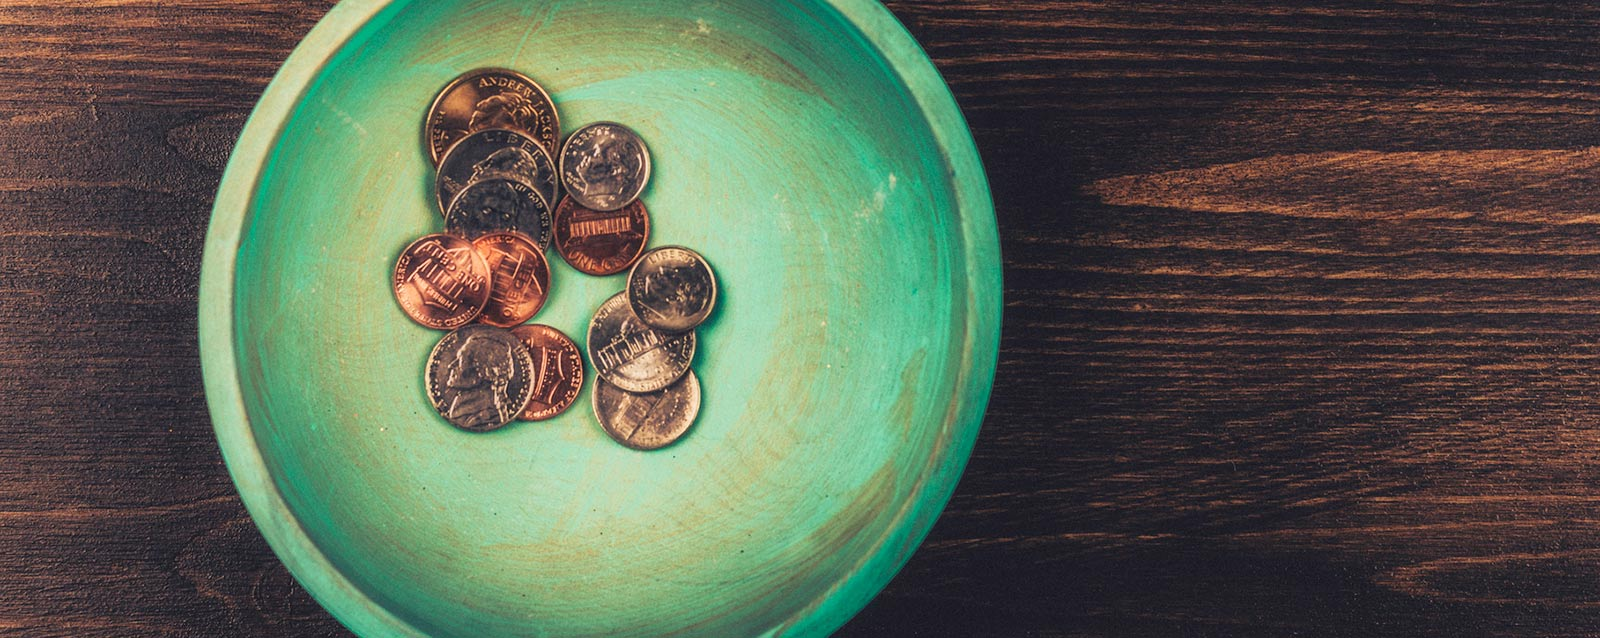 Coins in teal dish